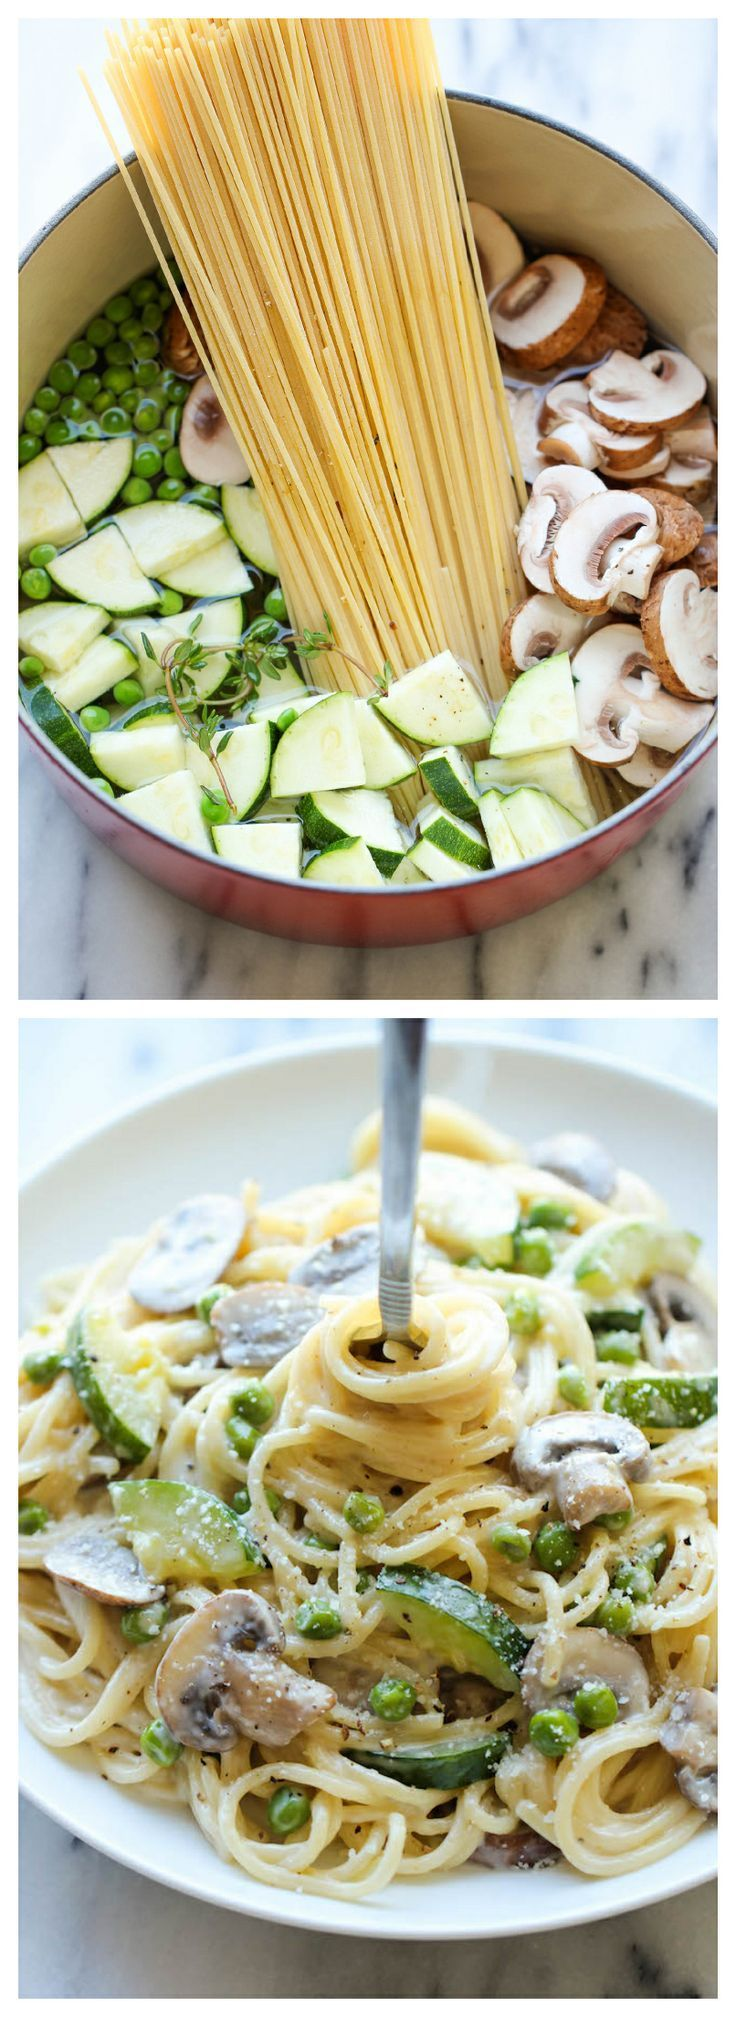 learn how to cook really delicious alfredo pasta